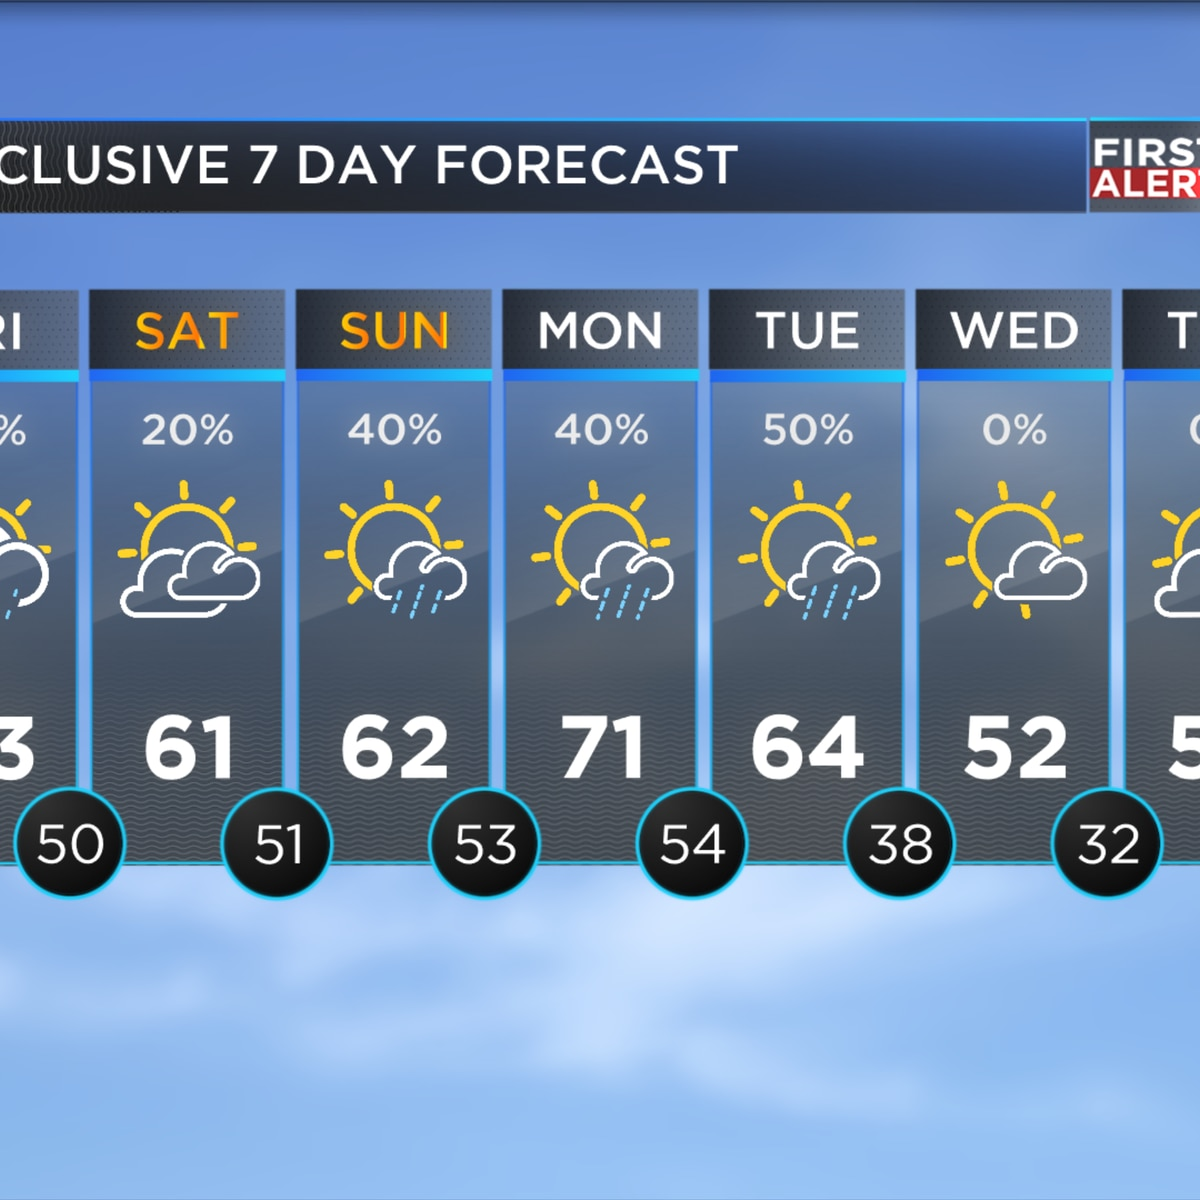 Wet weather returns to the forecast soon